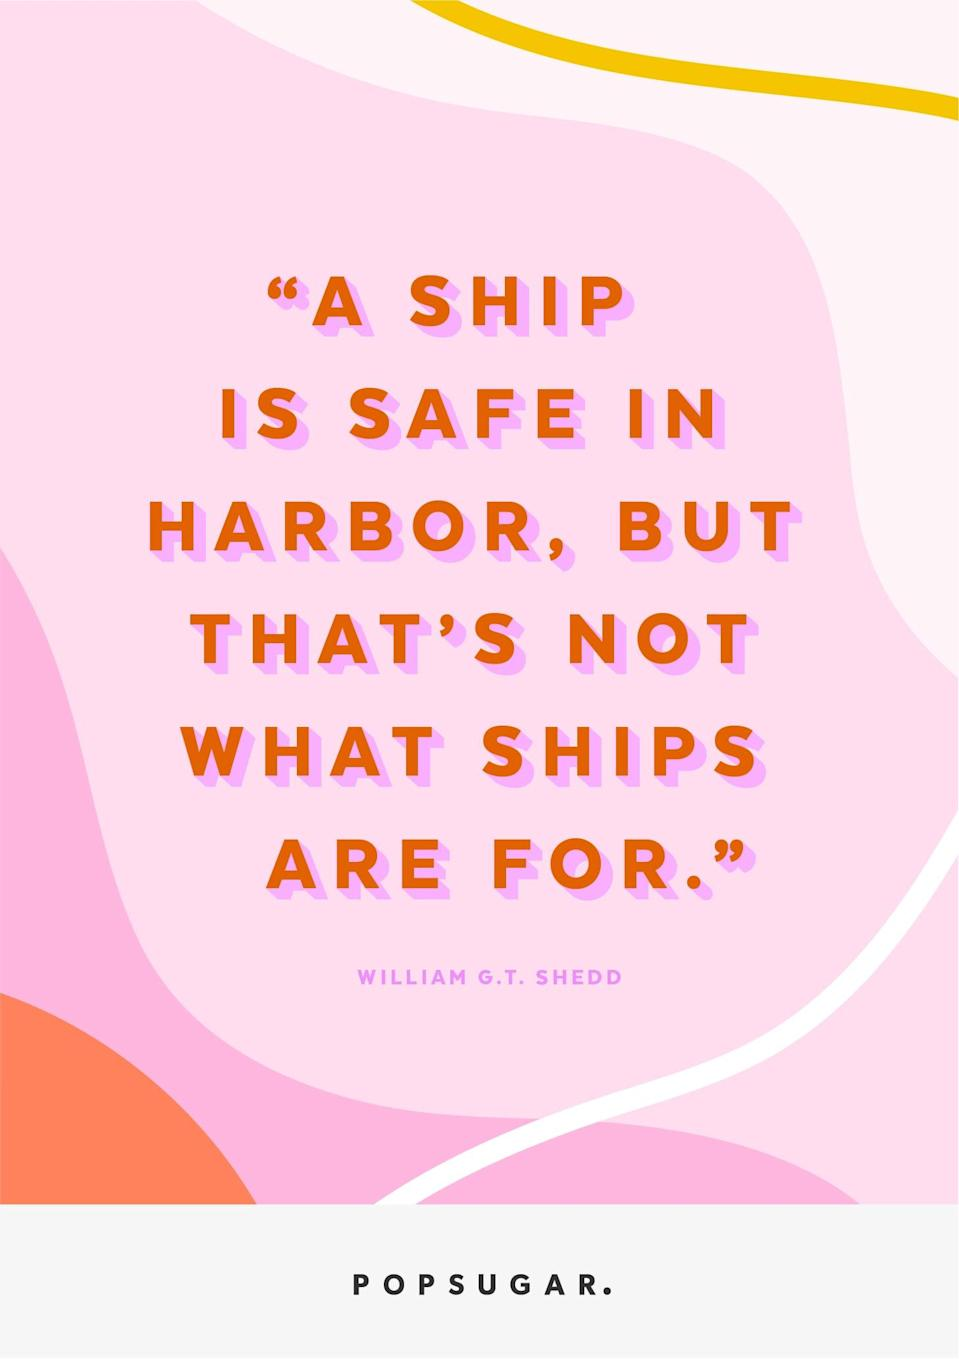 """<p><b>Quote:</b></p> <p>""""A ship is safe in harbor, but that's not what ships are for.""""</p> <p><b>Lesson to learn</b>:</p> <p>We can be safe and comfortable at home, but the point of life is to experience adventure and live it to the fullest.</p>"""